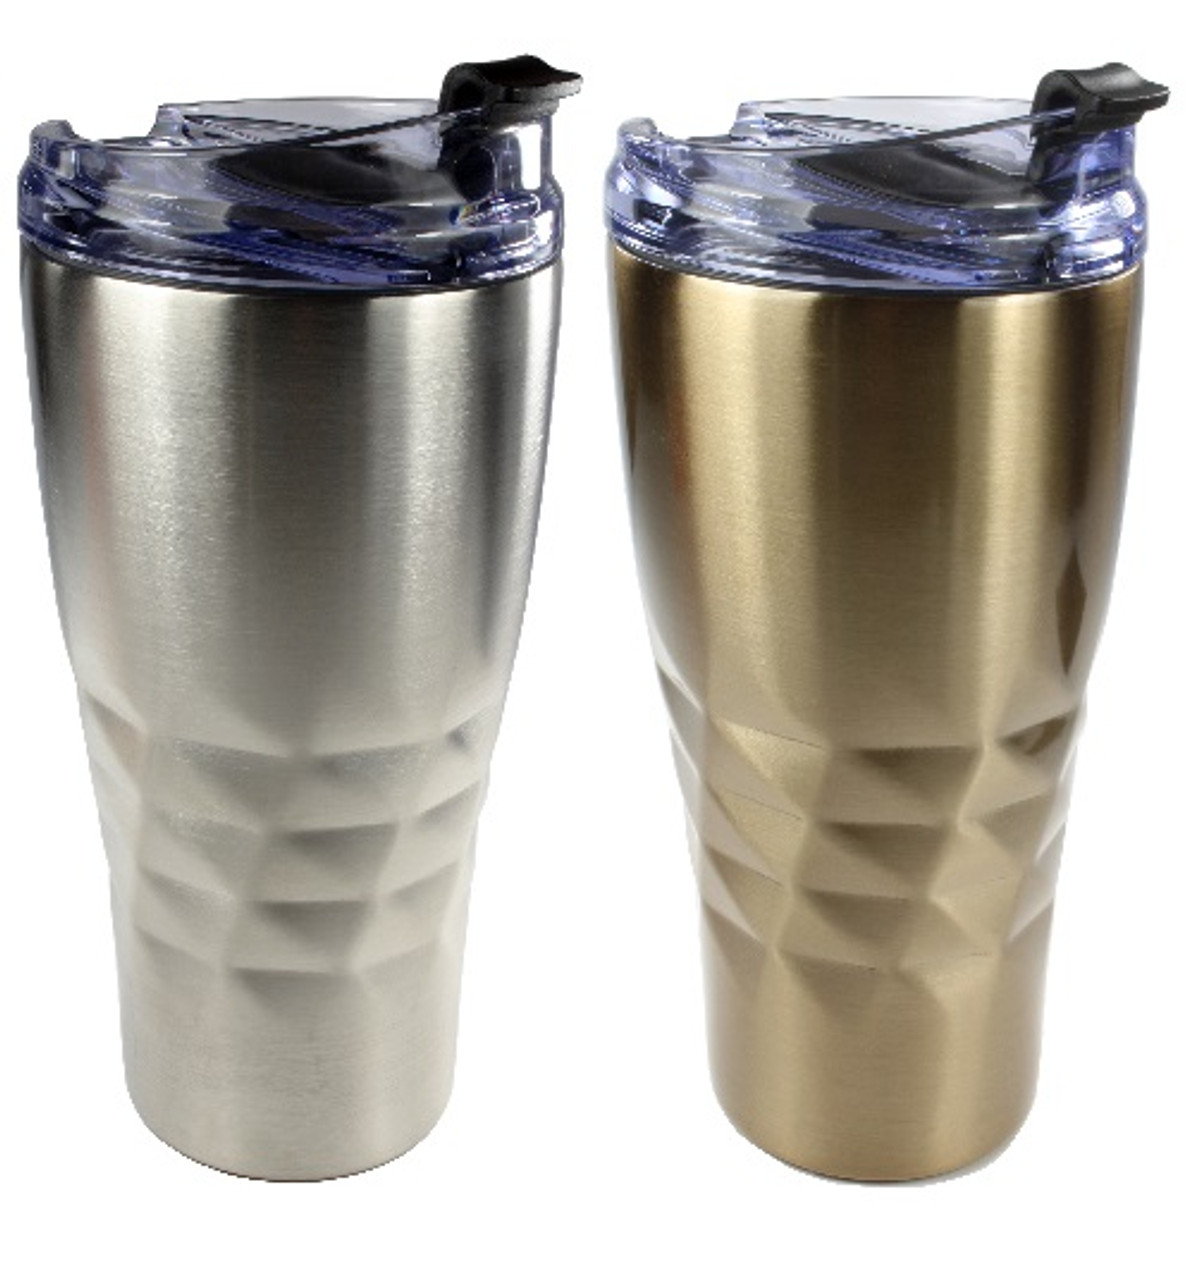 Buy 2 and Save on Primula 20oz Tumblers (Choose Colors Combo)